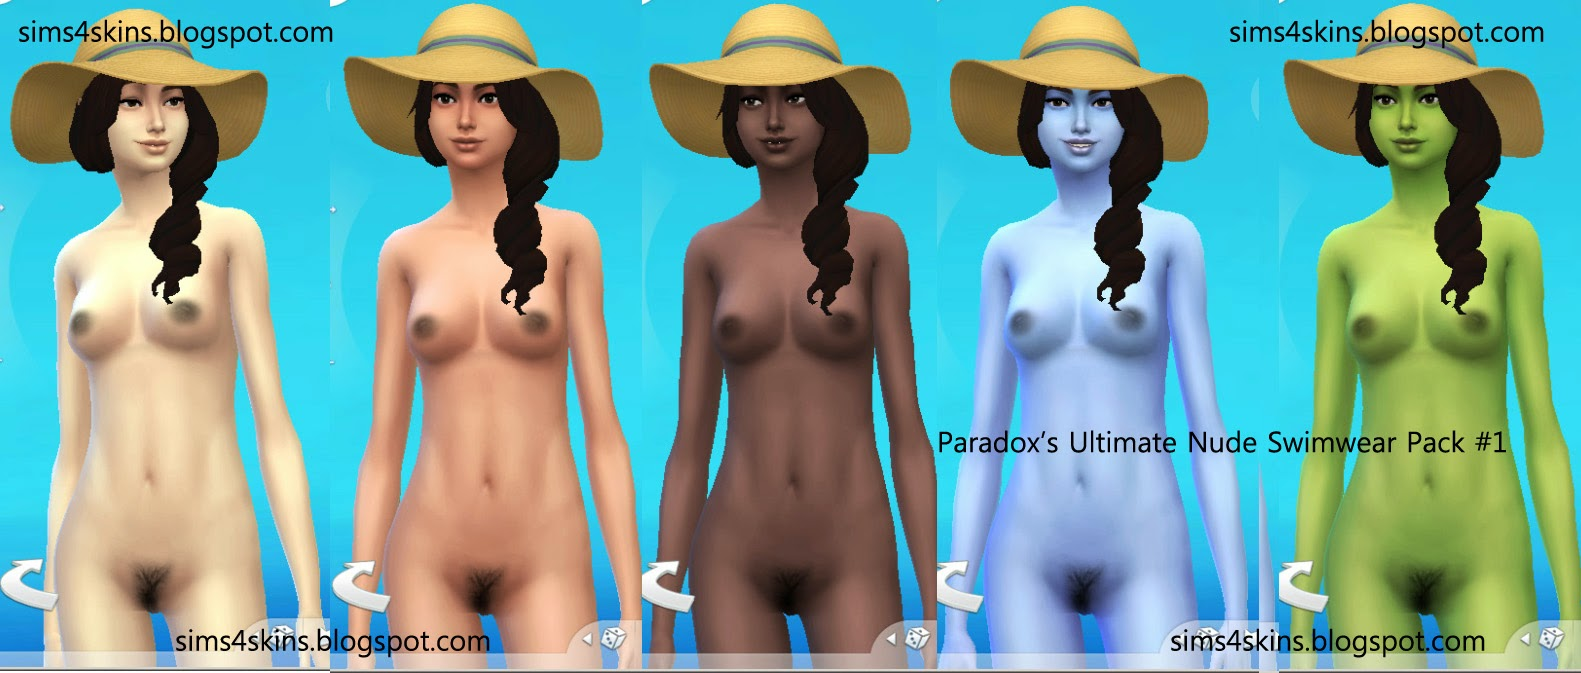 The sims family naked nude photos